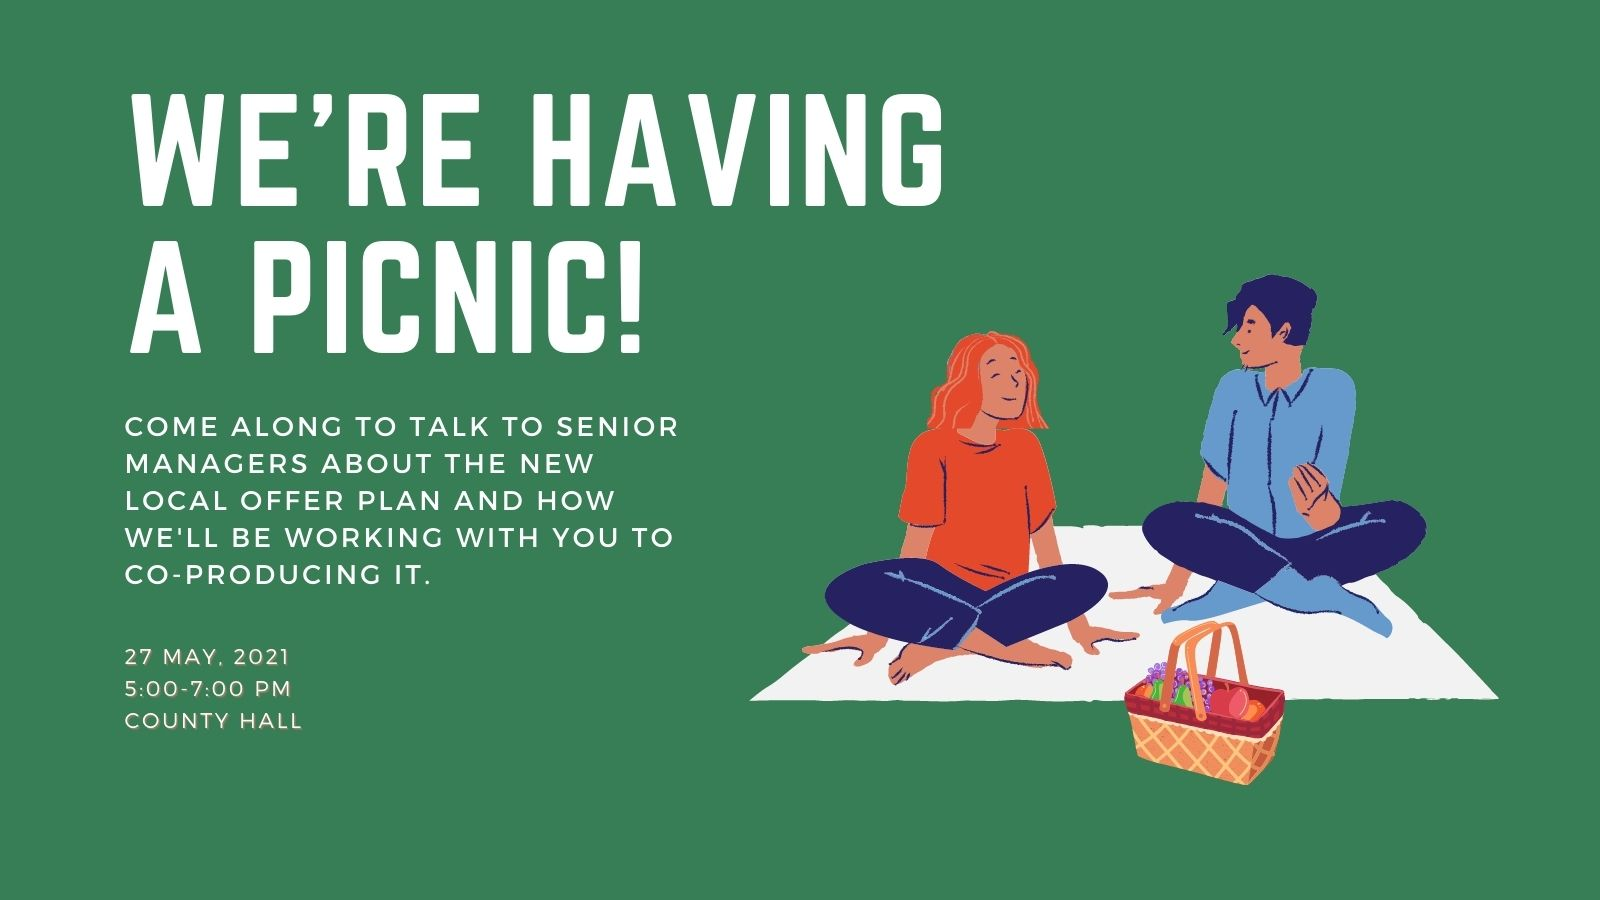 Picnic to talk about the new local offer